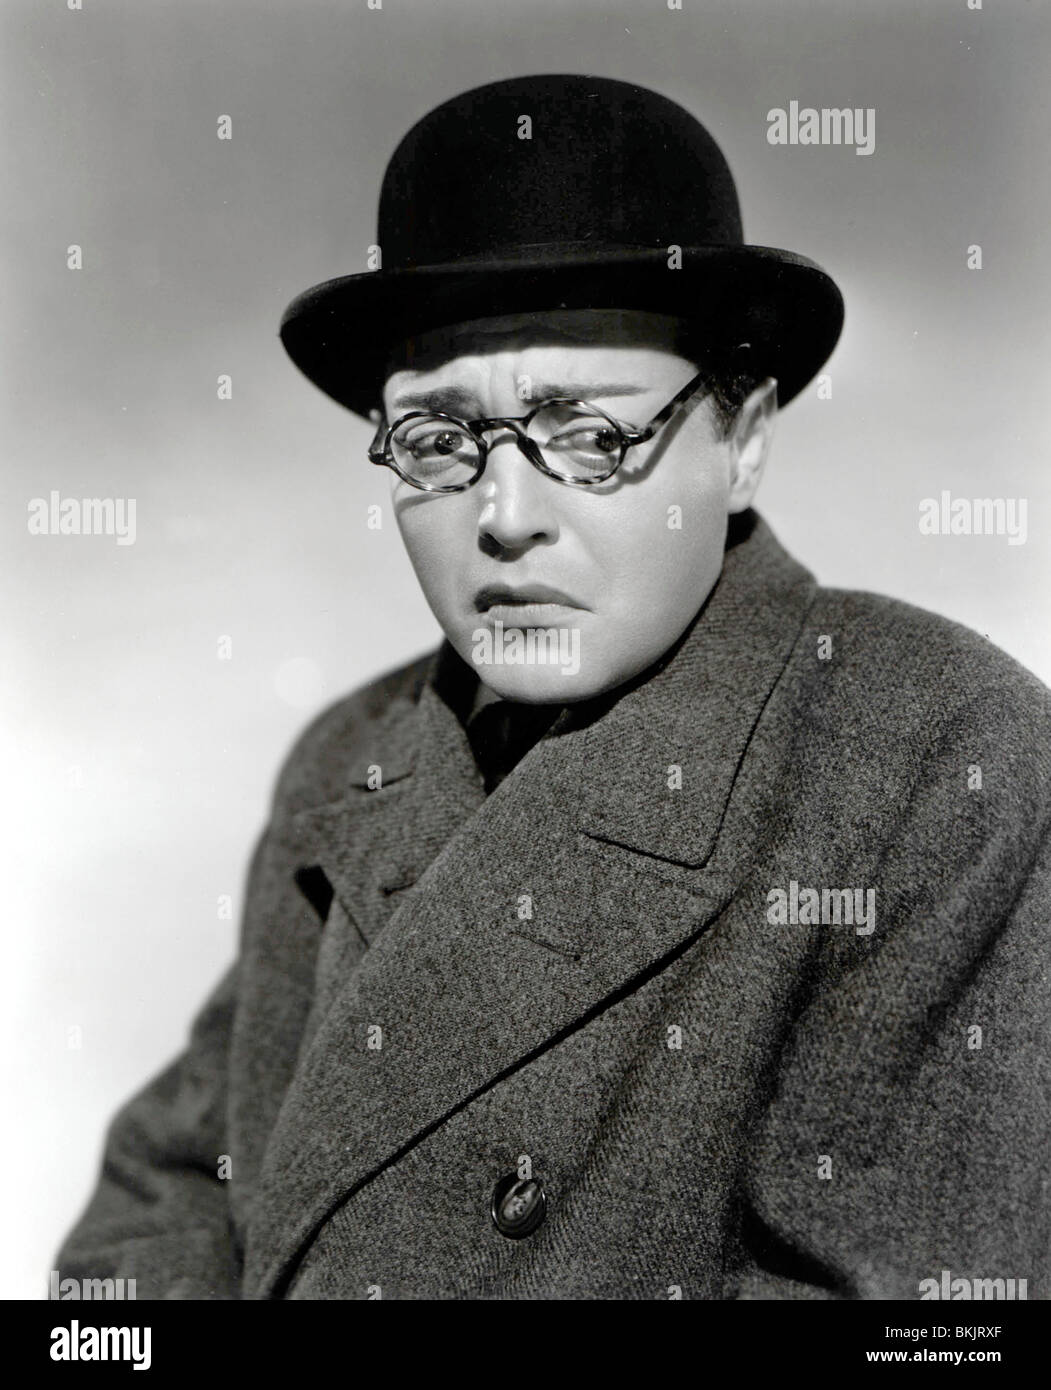 MYSTERIOUS MR MOTO (1938) PETER LORRE MMMO 002 P - Stock Image